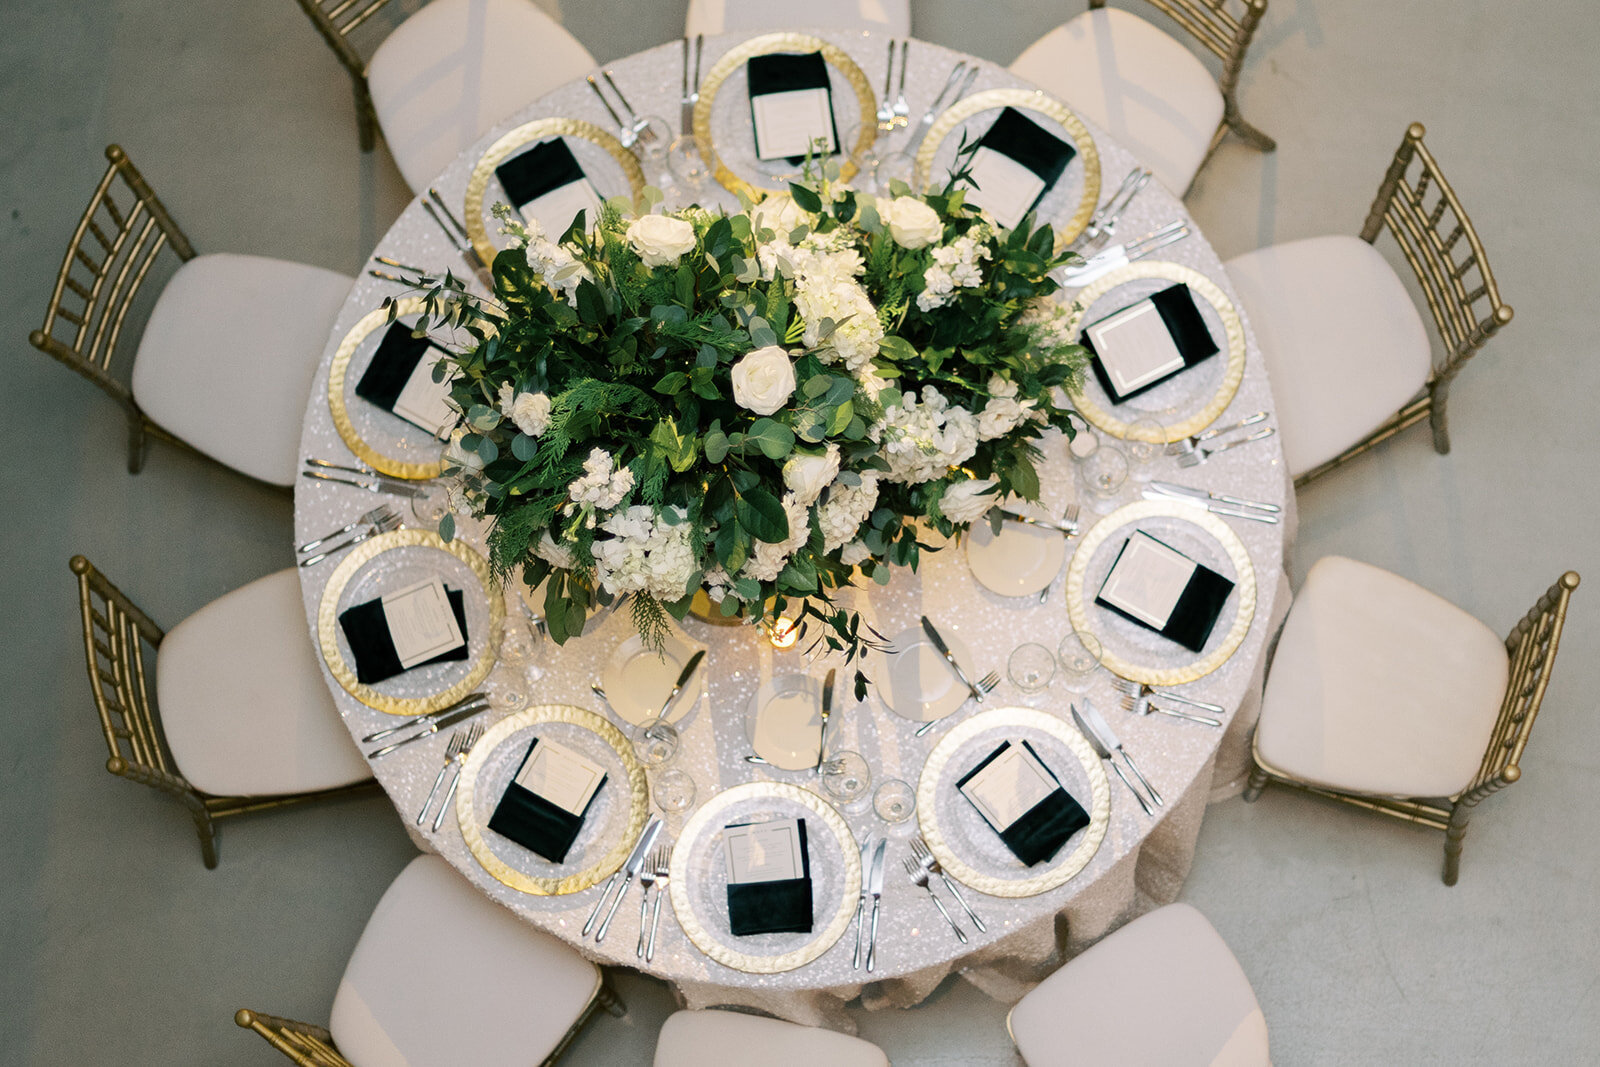 27-Venue-Six10-Wedding-table-overhead